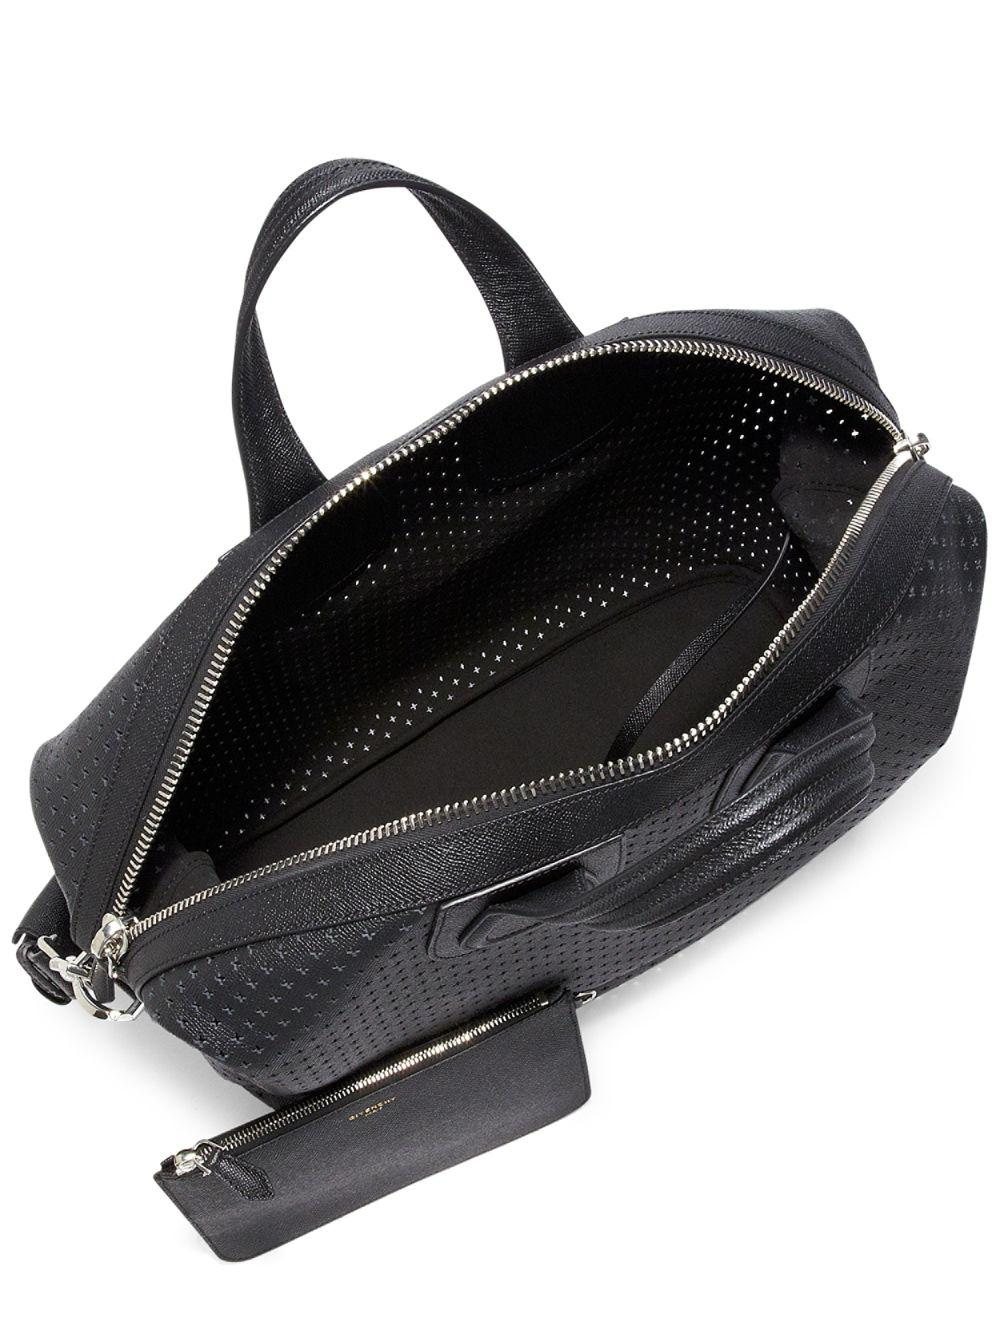 3448ef309a30 Givenchy - Black Nightingale Perforated Leather Bag for Men - Lyst. View  fullscreen